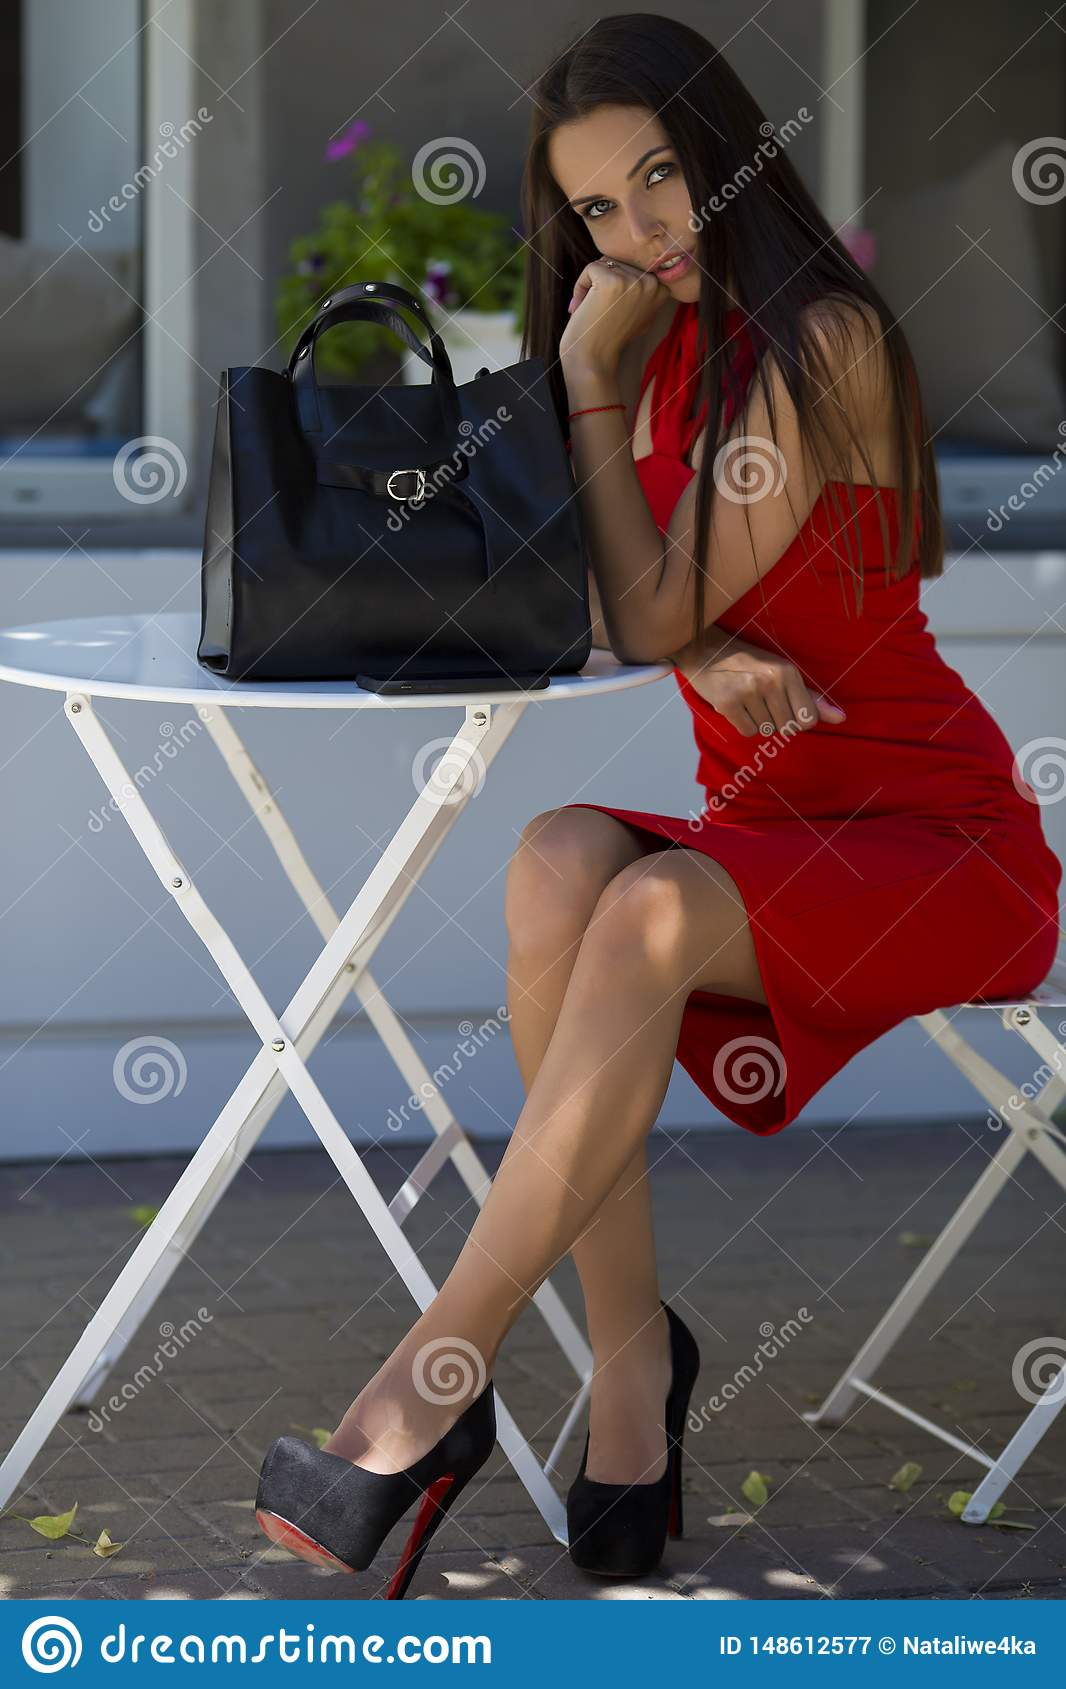 girl sitting on the chair in chic shoes with a stylish black bag